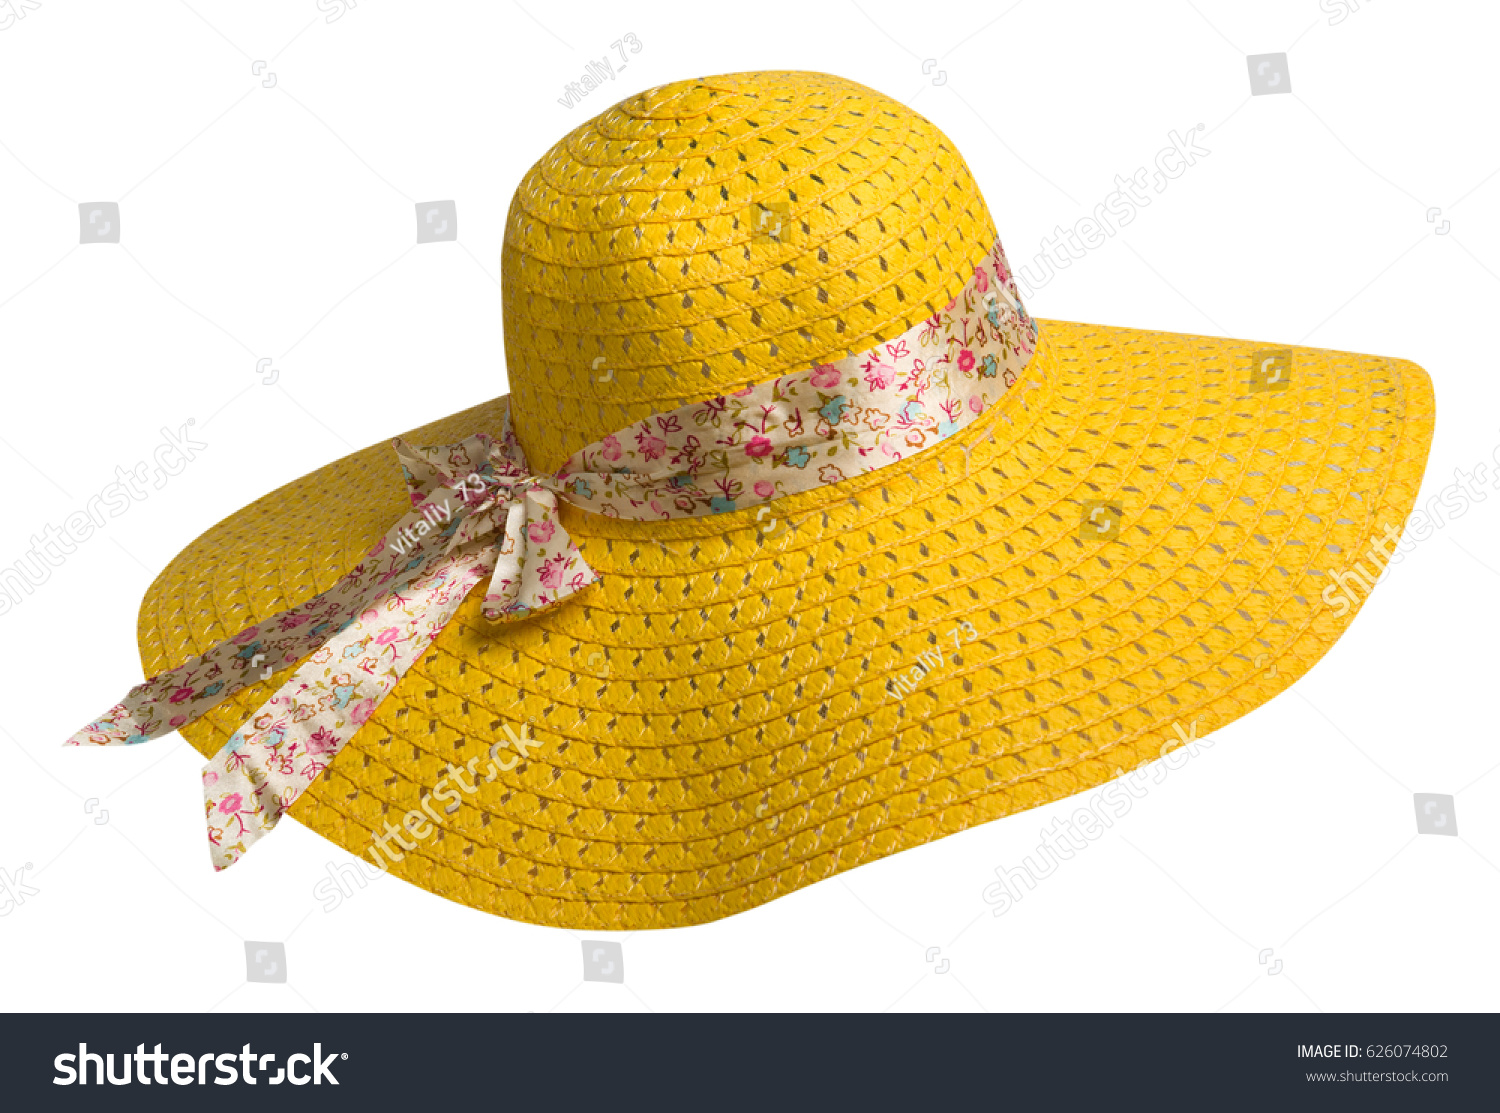 woman  hat isolated on white background .Women's beach hat . colorful hat .yellow hat . #626074802